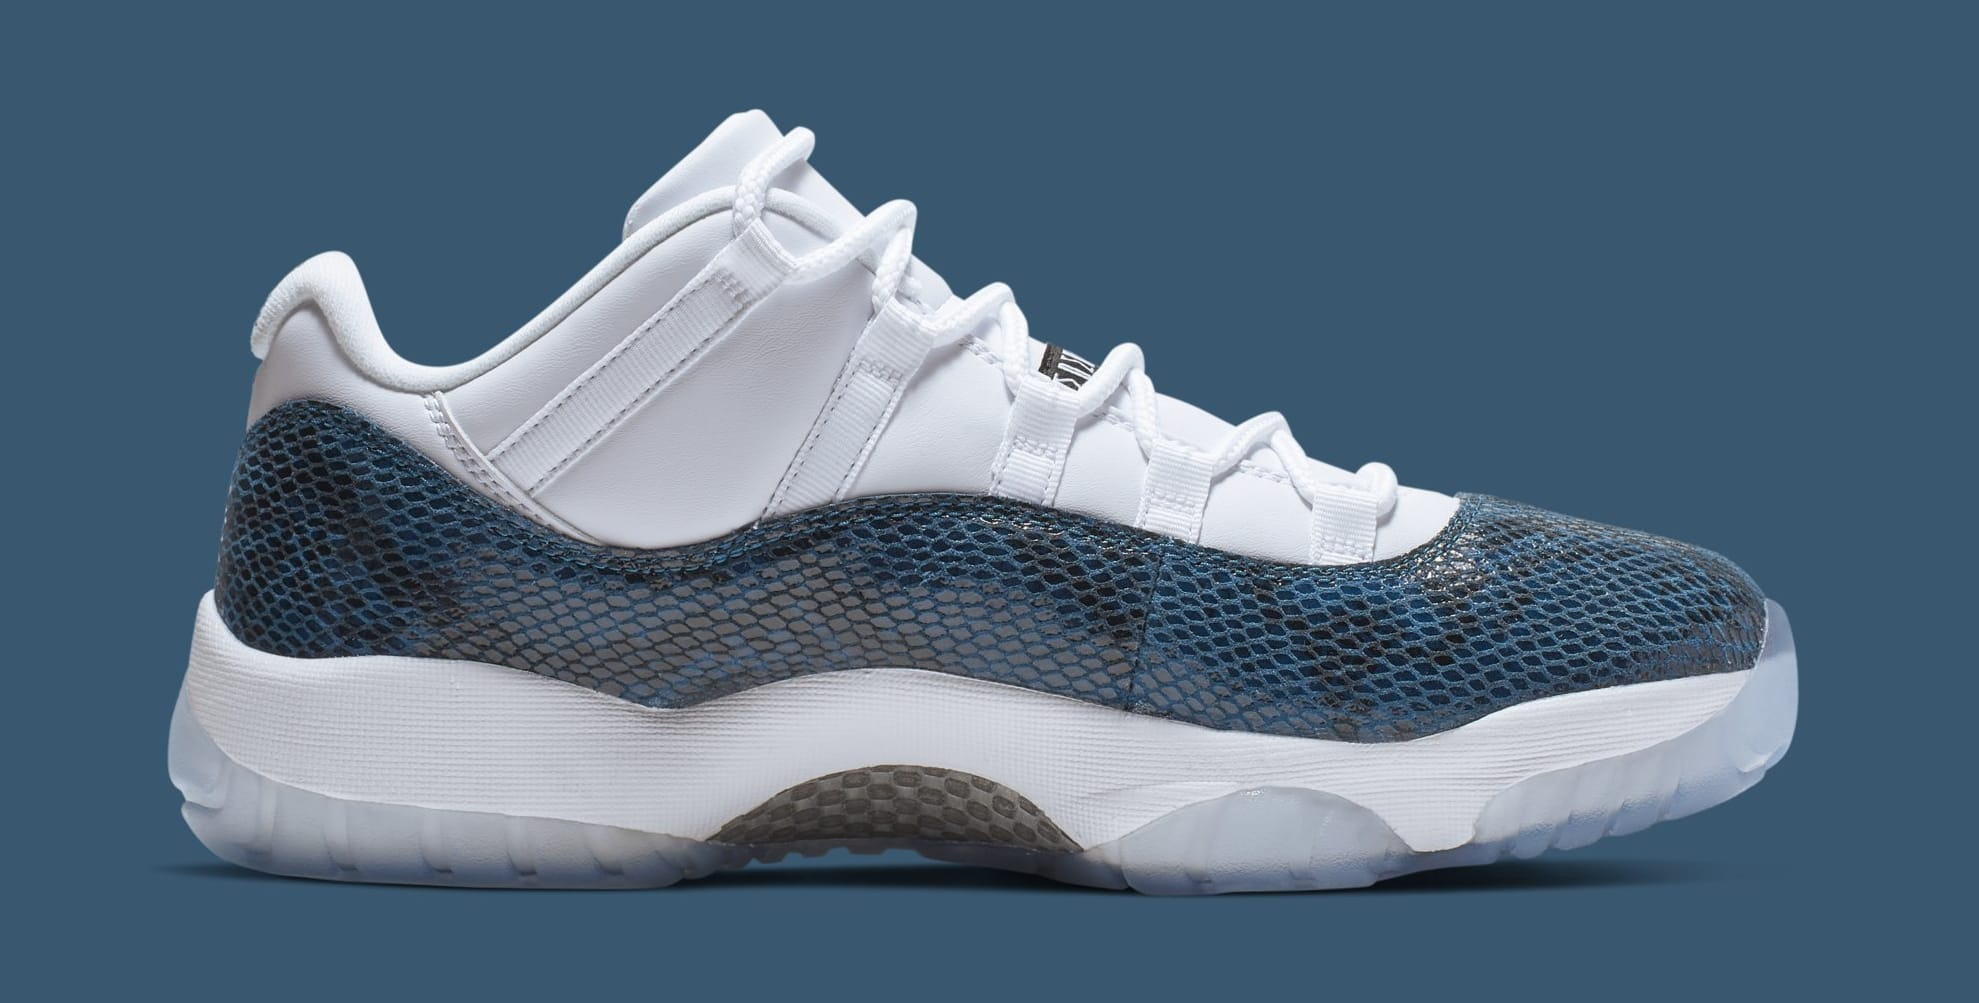 ef018c34bb4406 Image via Nike Air Jordan 11 Low  Blue Snakeskin  CD6846-102 (Medial)